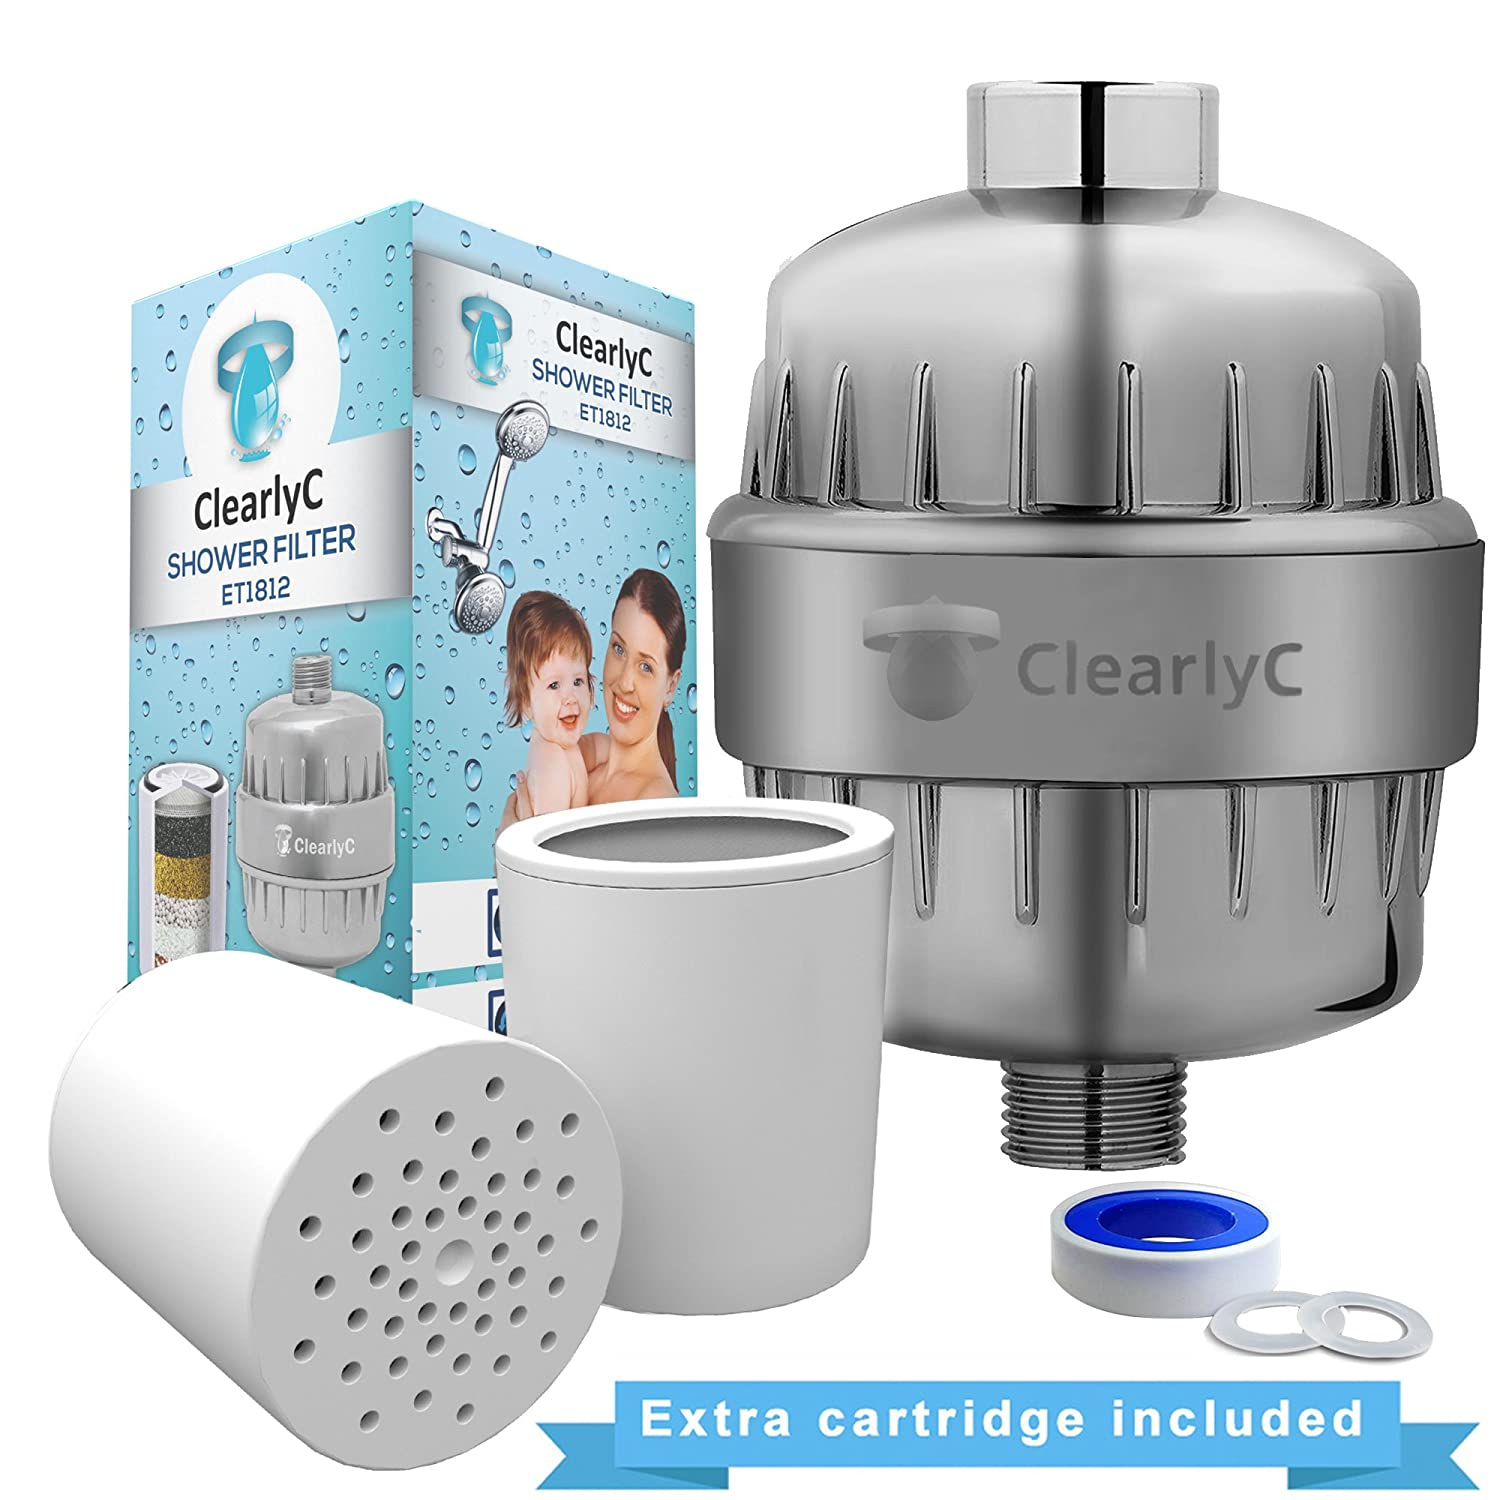 Shower Filter and Hard Water Softener - High Output, Multi-Layer Water Filtration System – Removes Chlorine and Heavy Metals for Soft Skin and Healthy Hair + 2 Filter Cartridges by Clearly, ET1812 ClearlyC